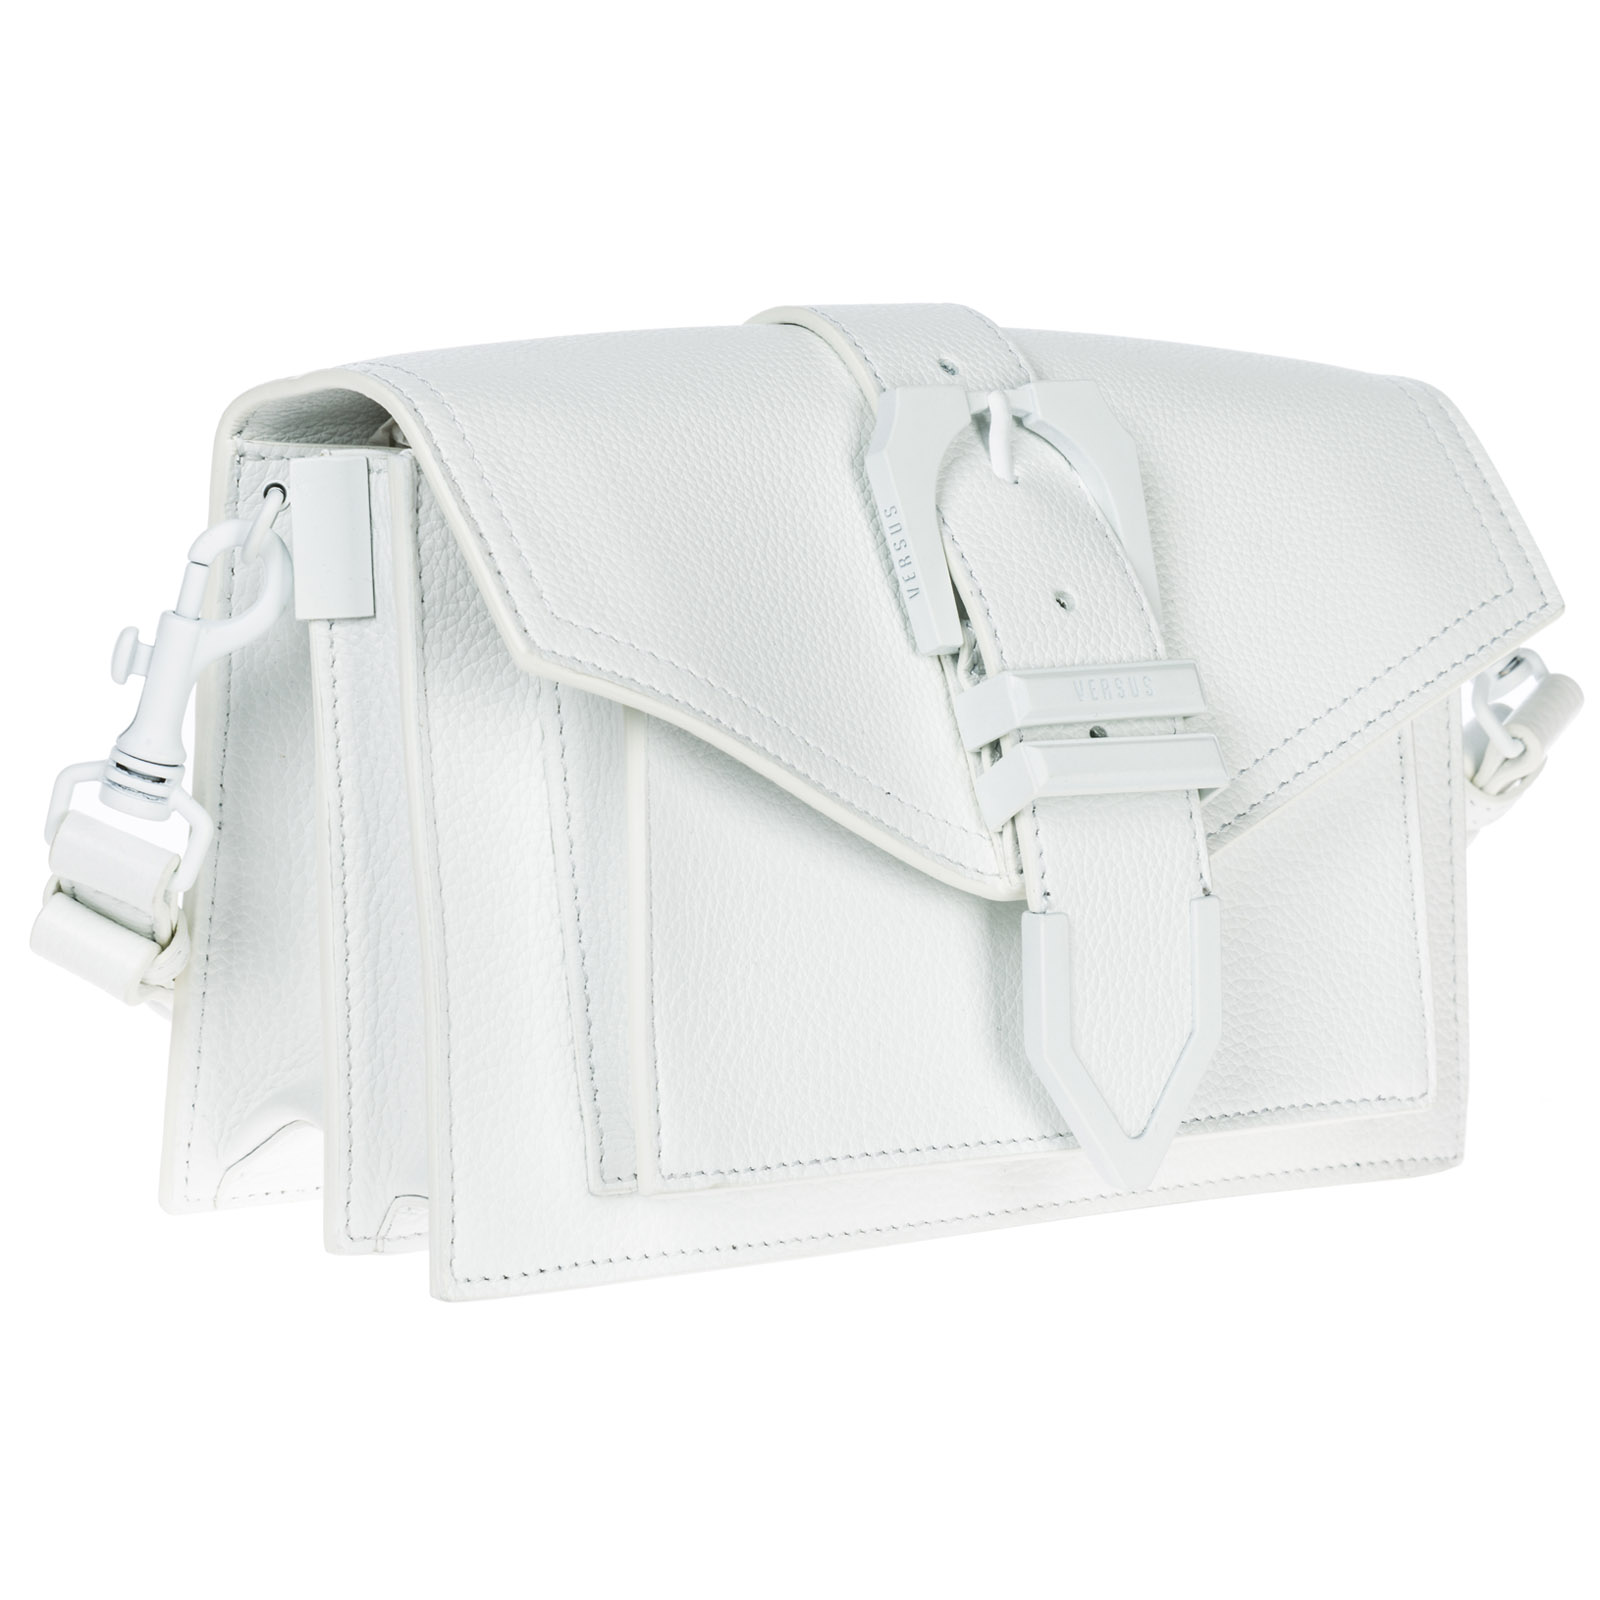 664ea7f703 Shoulder bag Versus Versace FBD1394-FVGR_F030 optic white | FRMODA.com